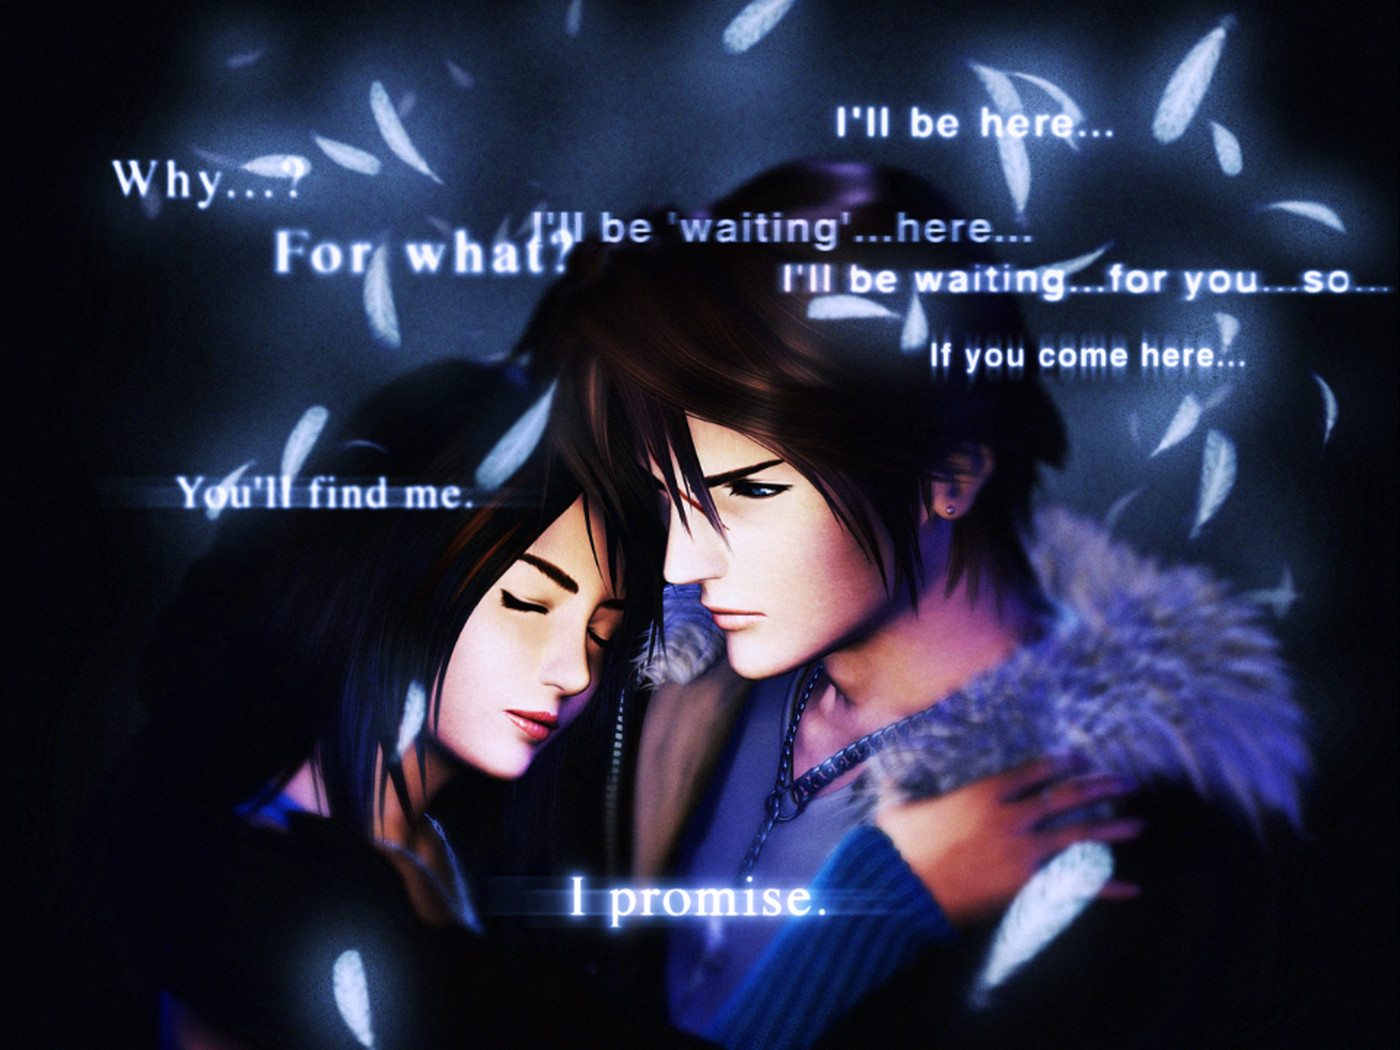 Final Fantasy 8 Gets Another Chance At The Spotlight With New